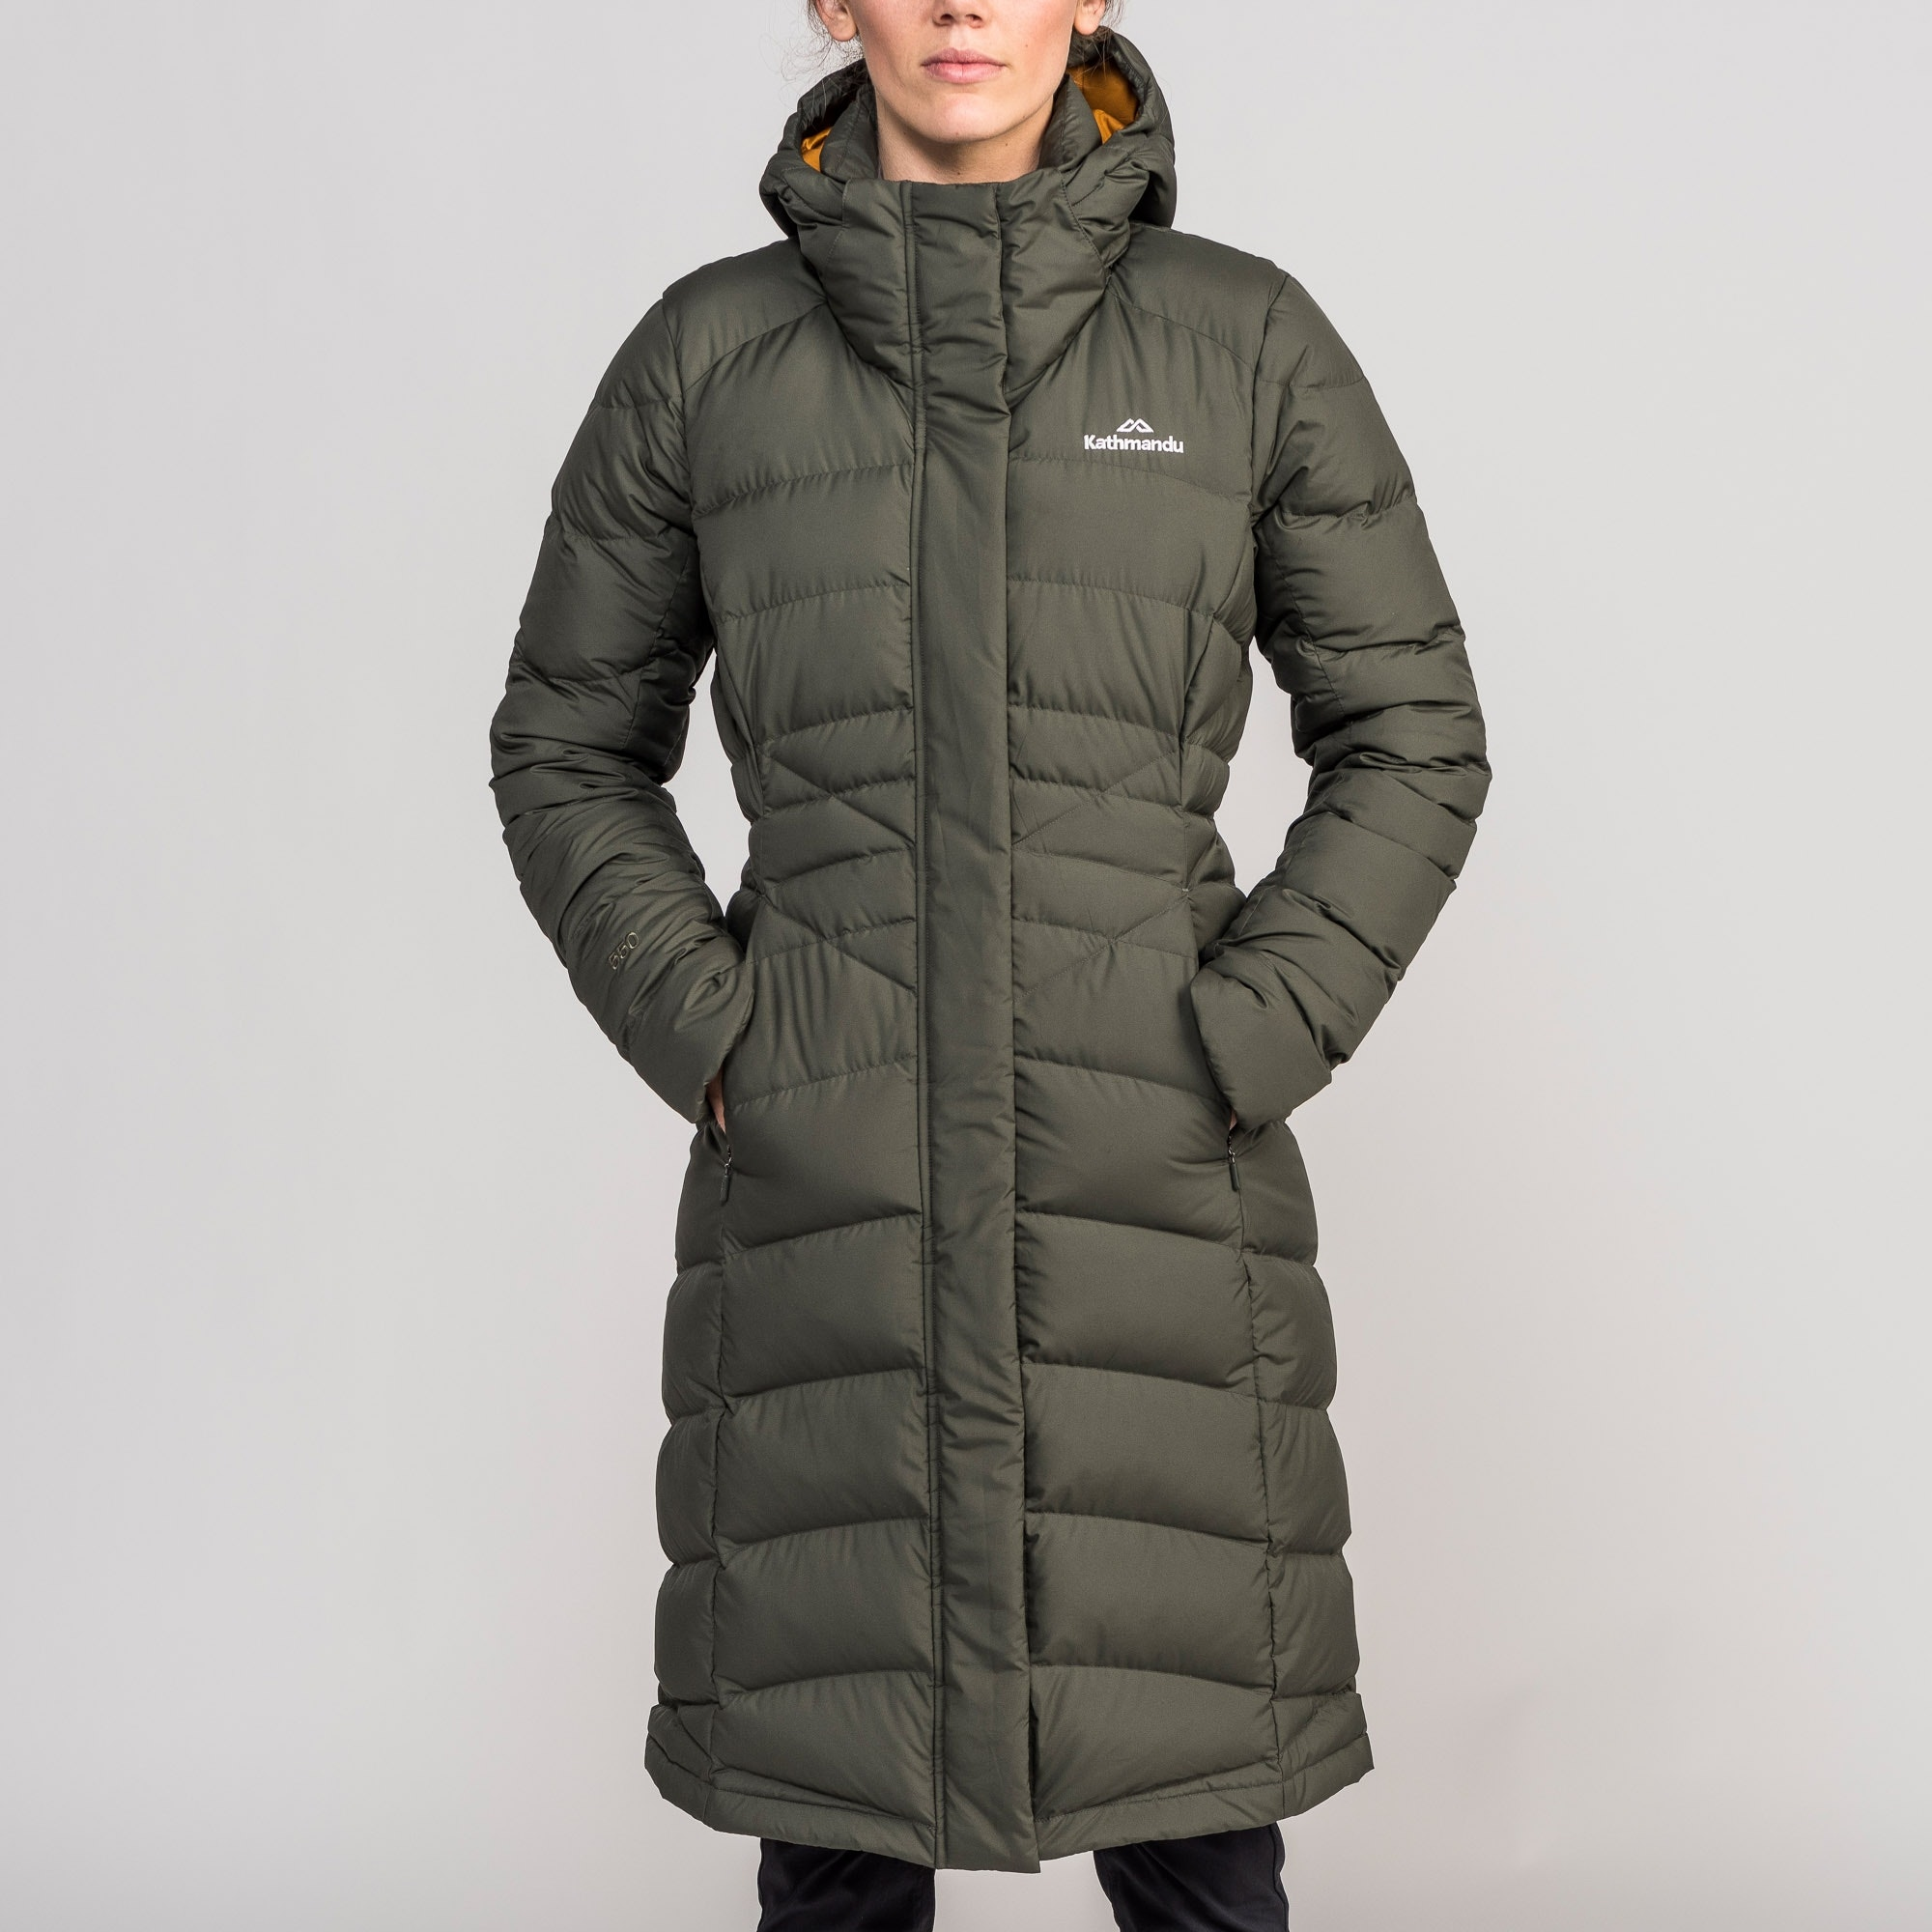 How to choose the warmest female down jacket Womens fur coats with fur: advantages and disadvantages